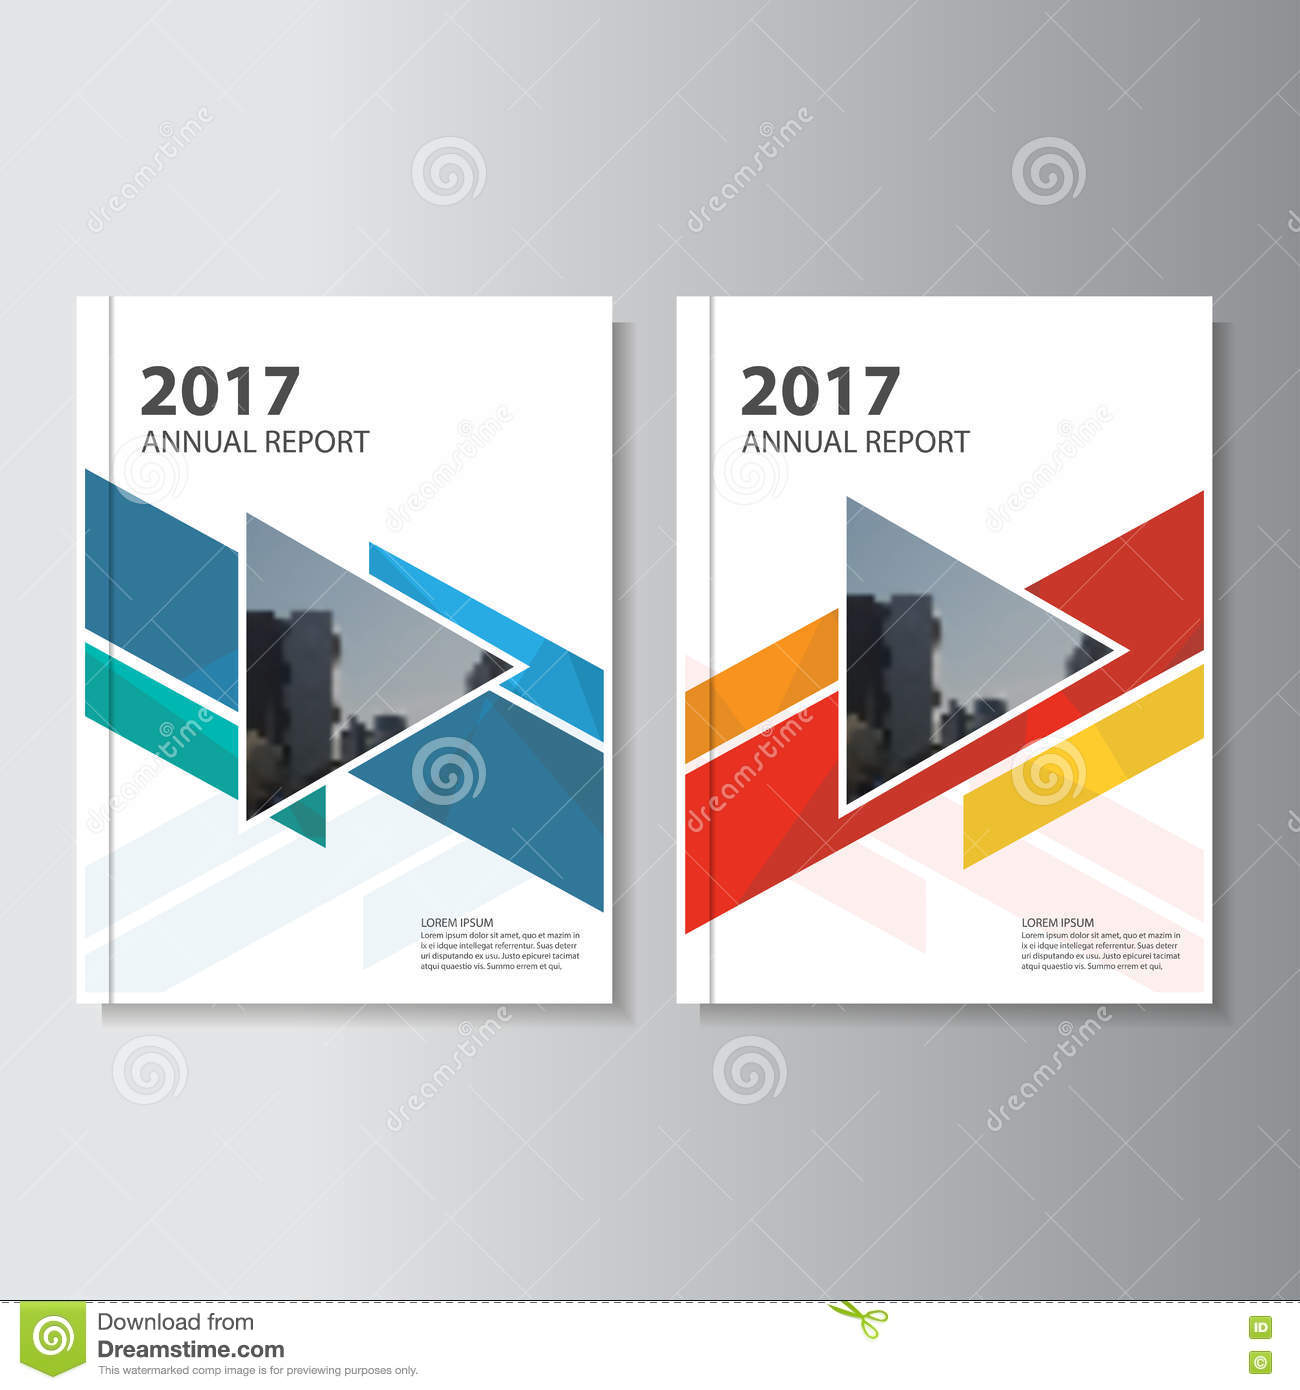 doc annual report cover template best ideas about rn nursing resume examplesannual report cover design book annual report cover template